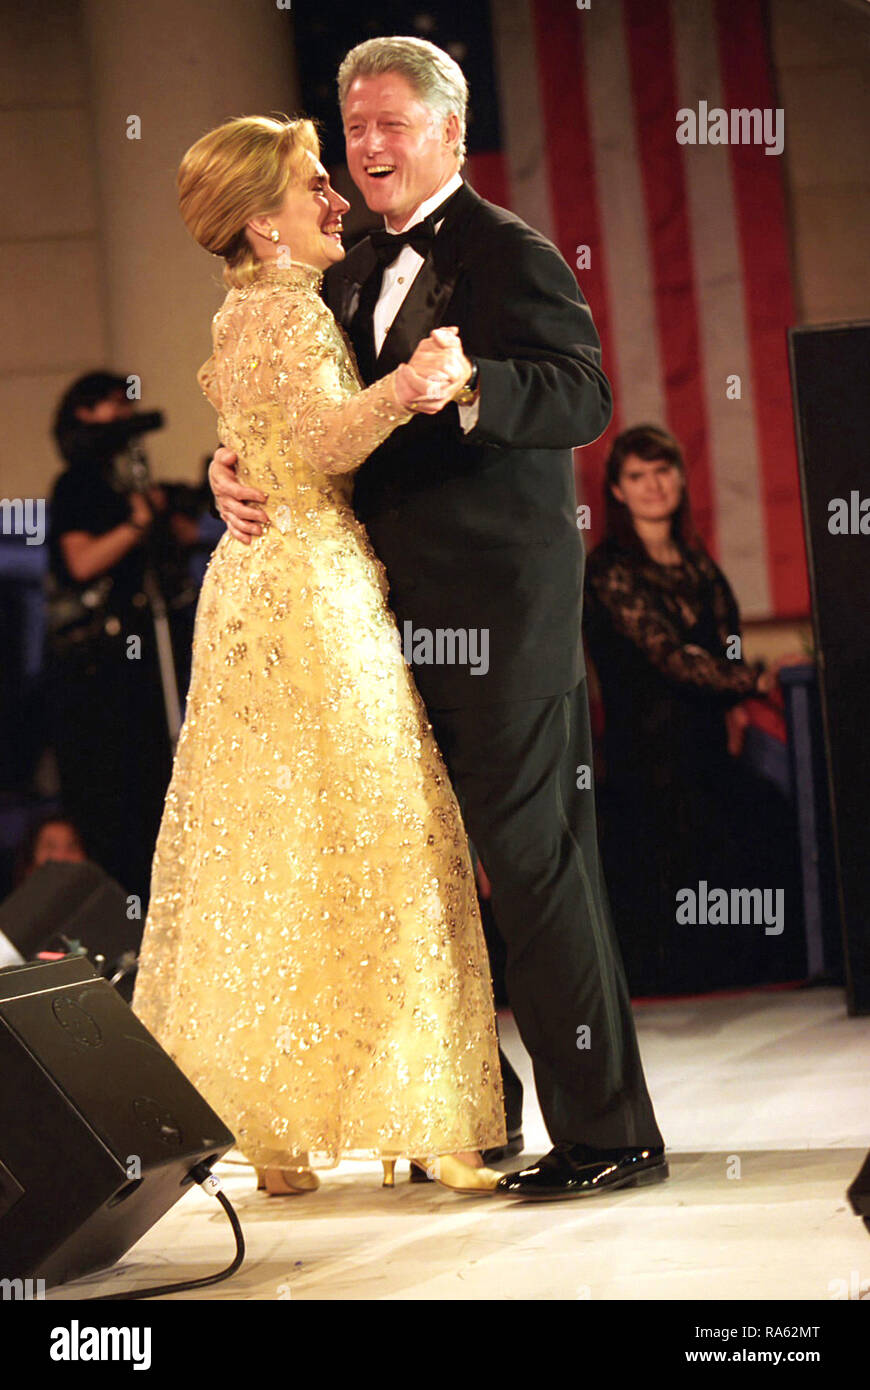 Clinton Inaugural Ball High Resolution Stock Photography And Images Alamy